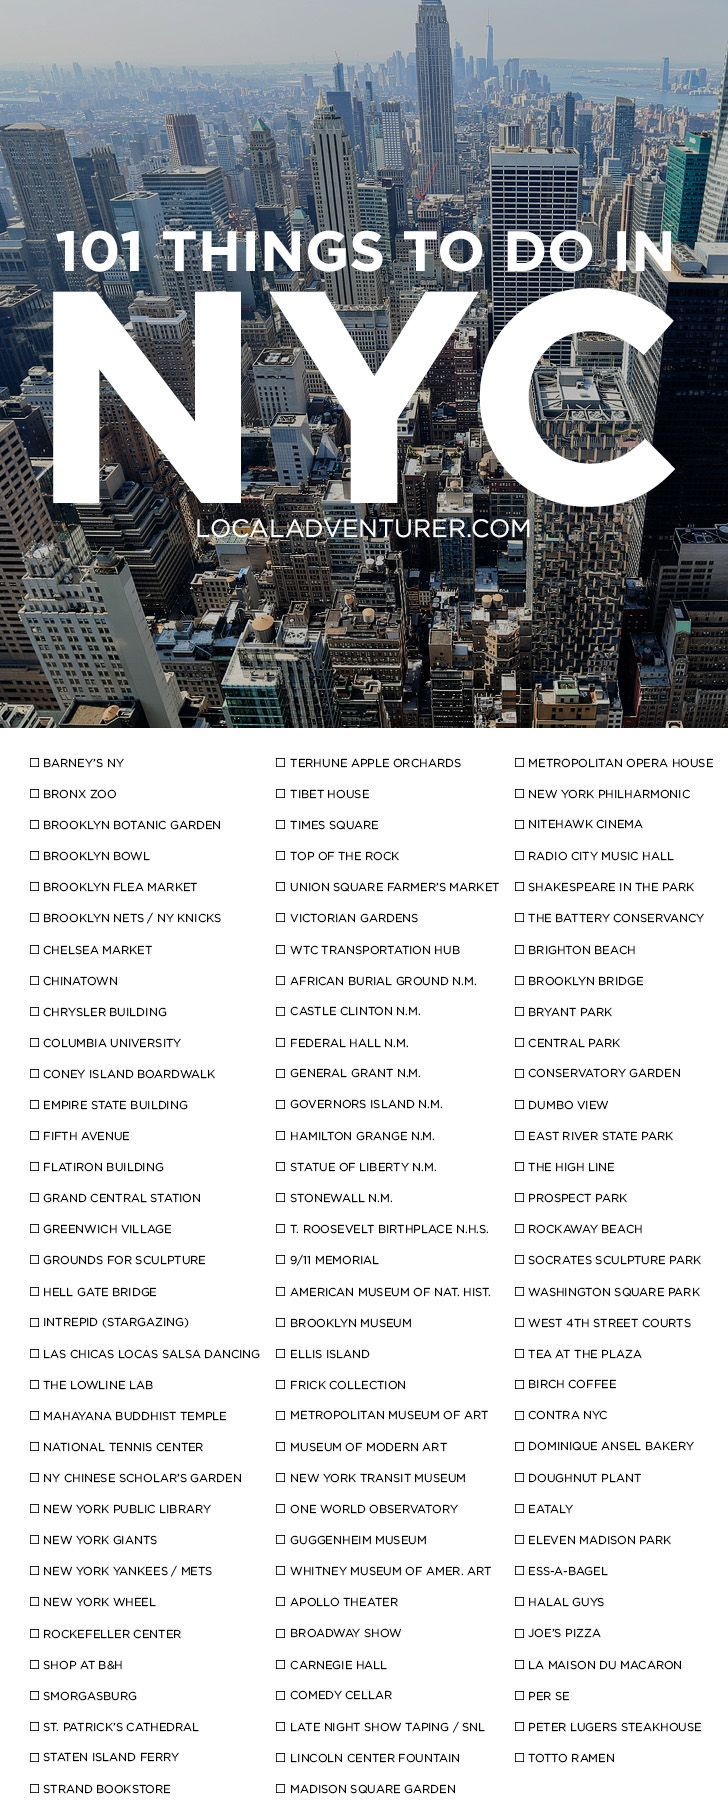 Check out our 101 Things to Do in NYC Bucket List - from the touristy spots everyone has to do at least once to the spots a little more off the beaten path. // localadventurer.com partez en voyage maintenant www.airbnb.fr/c/jeremyj1489